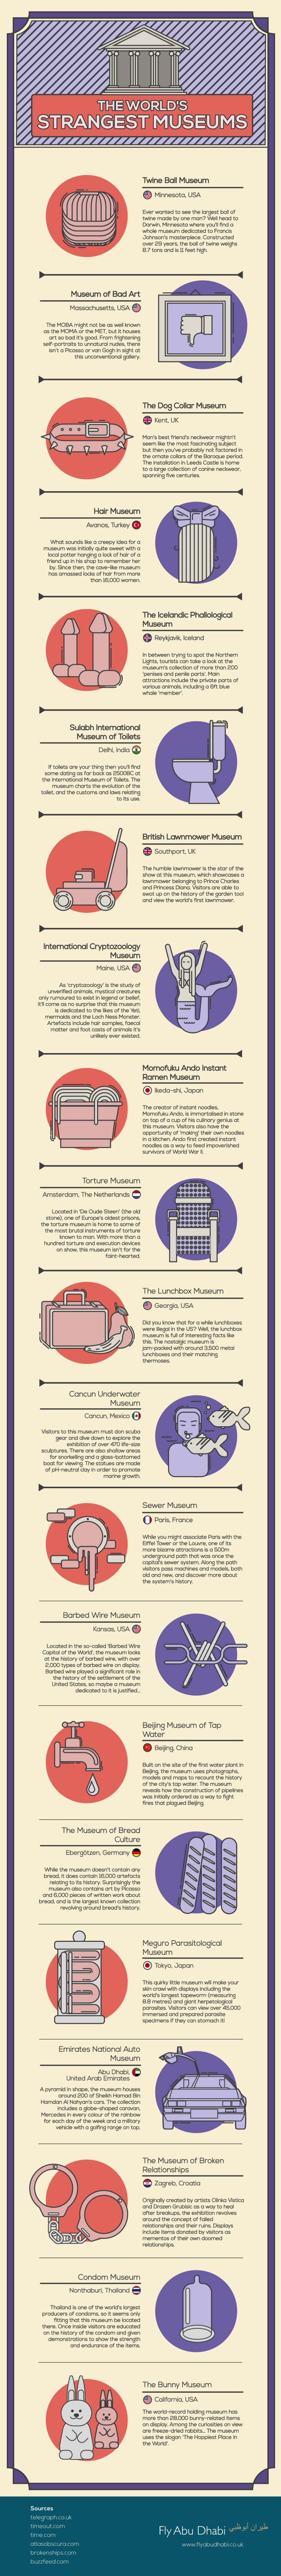 The World's Strangest Museums #infographic #Travel #Museums